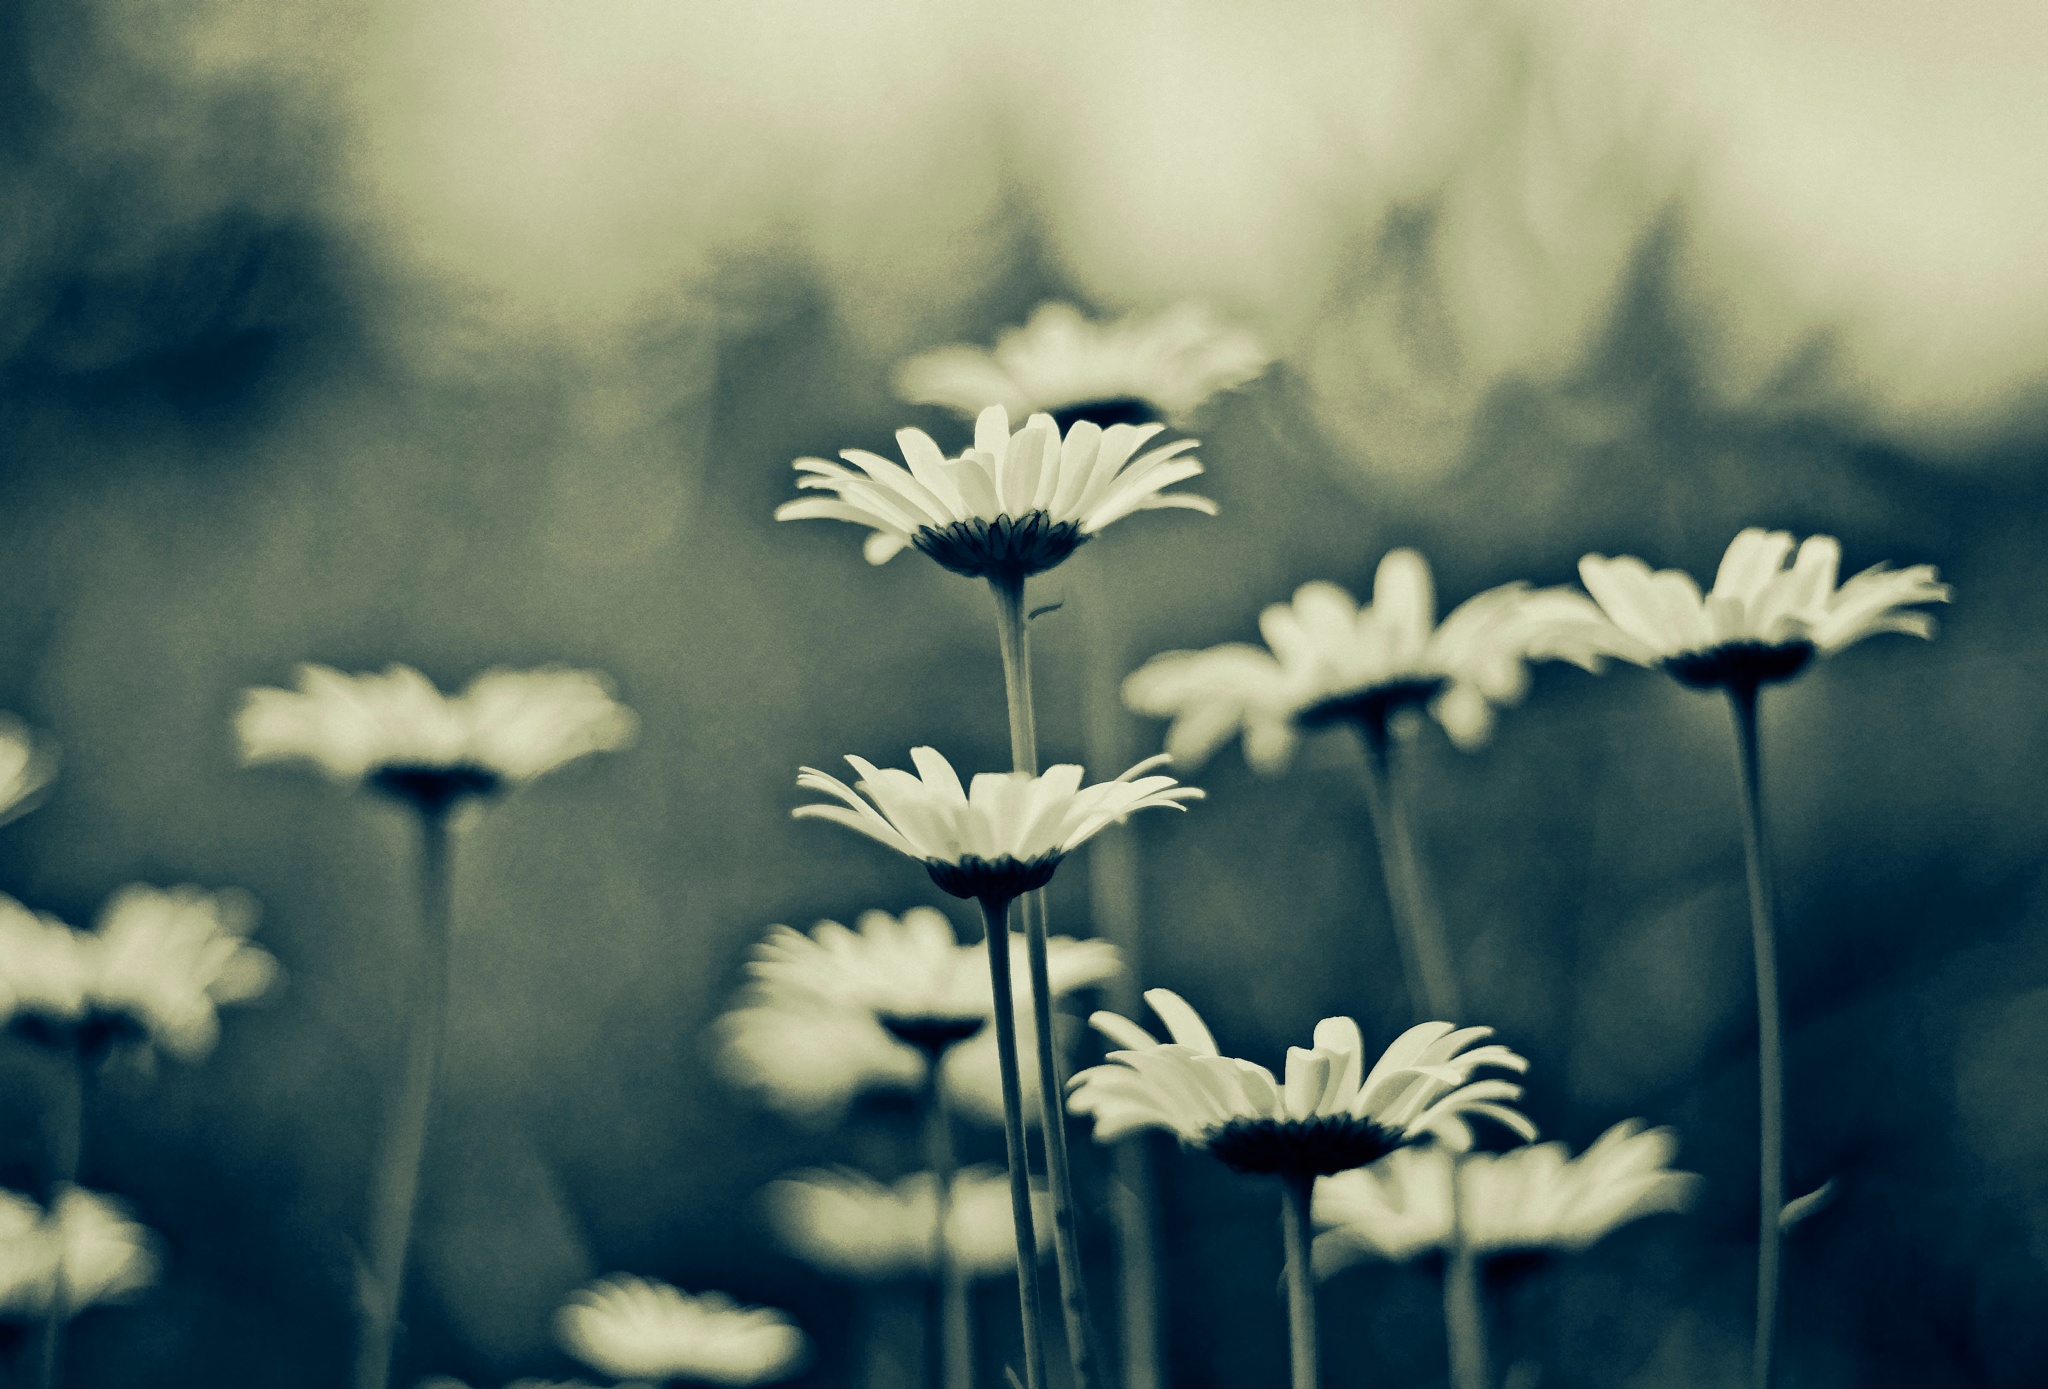 daisies by timtoll